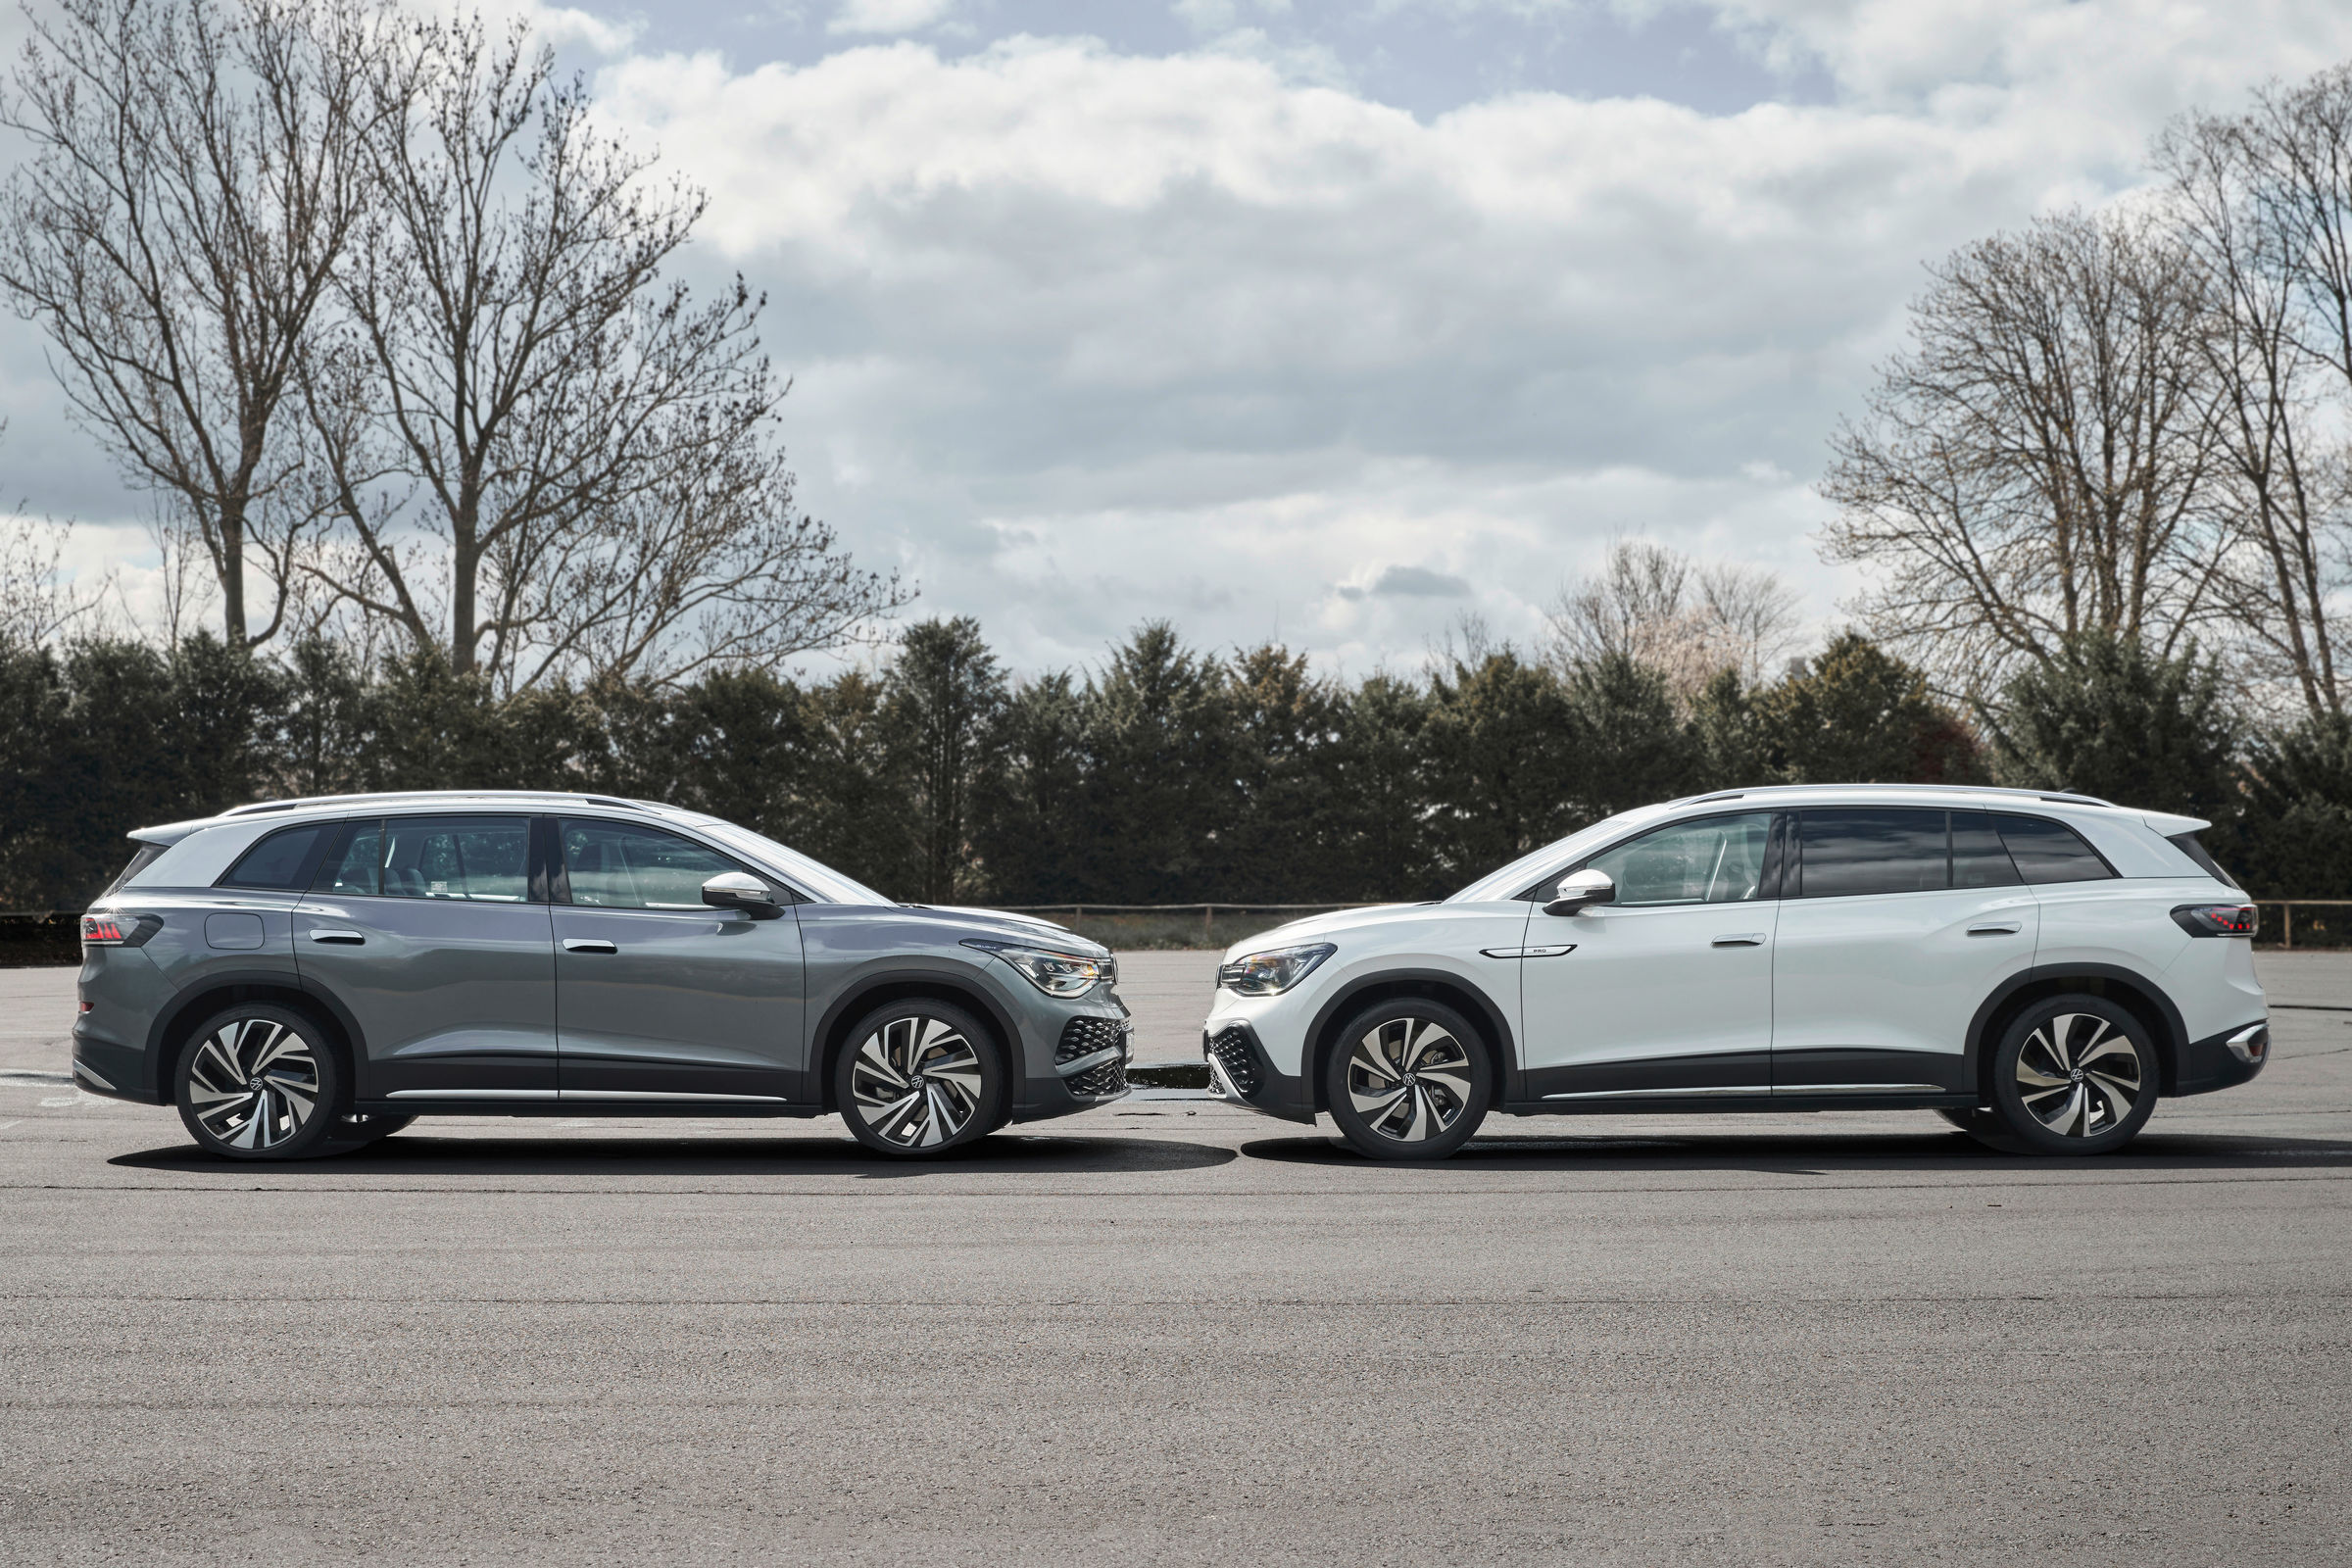 VW ID6 face off